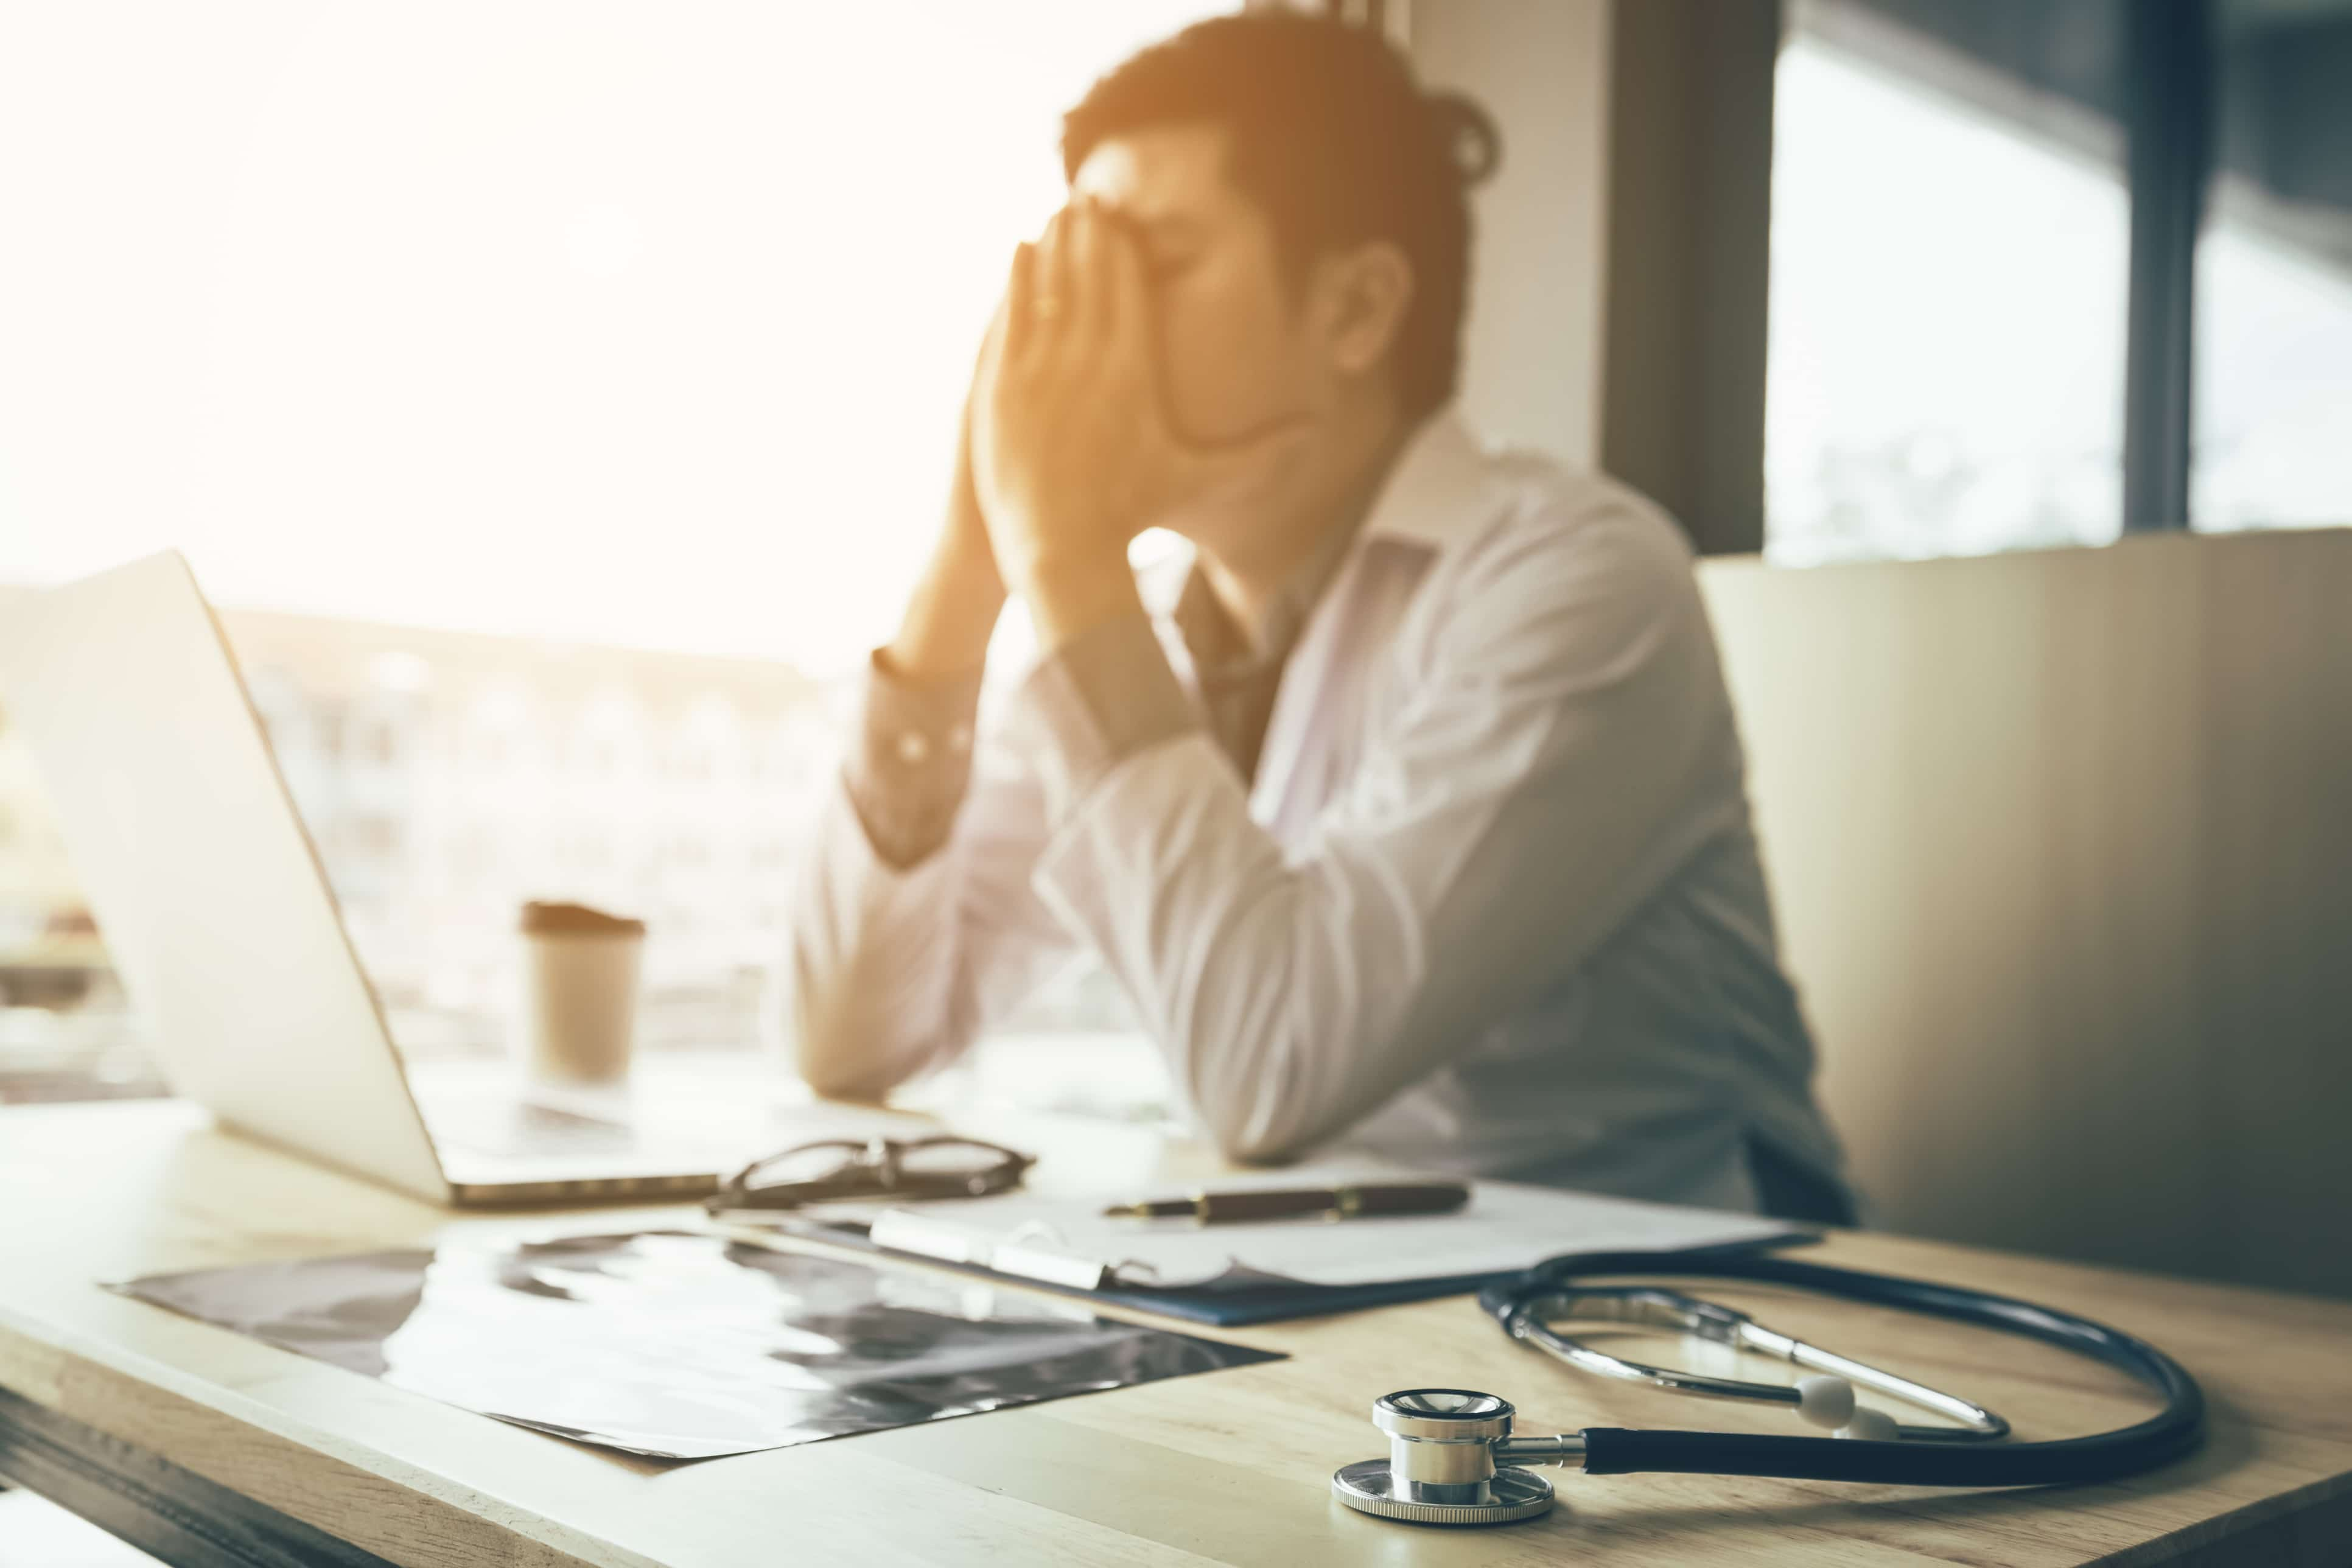 Emotional doctor sitting in office with hands covering his face.